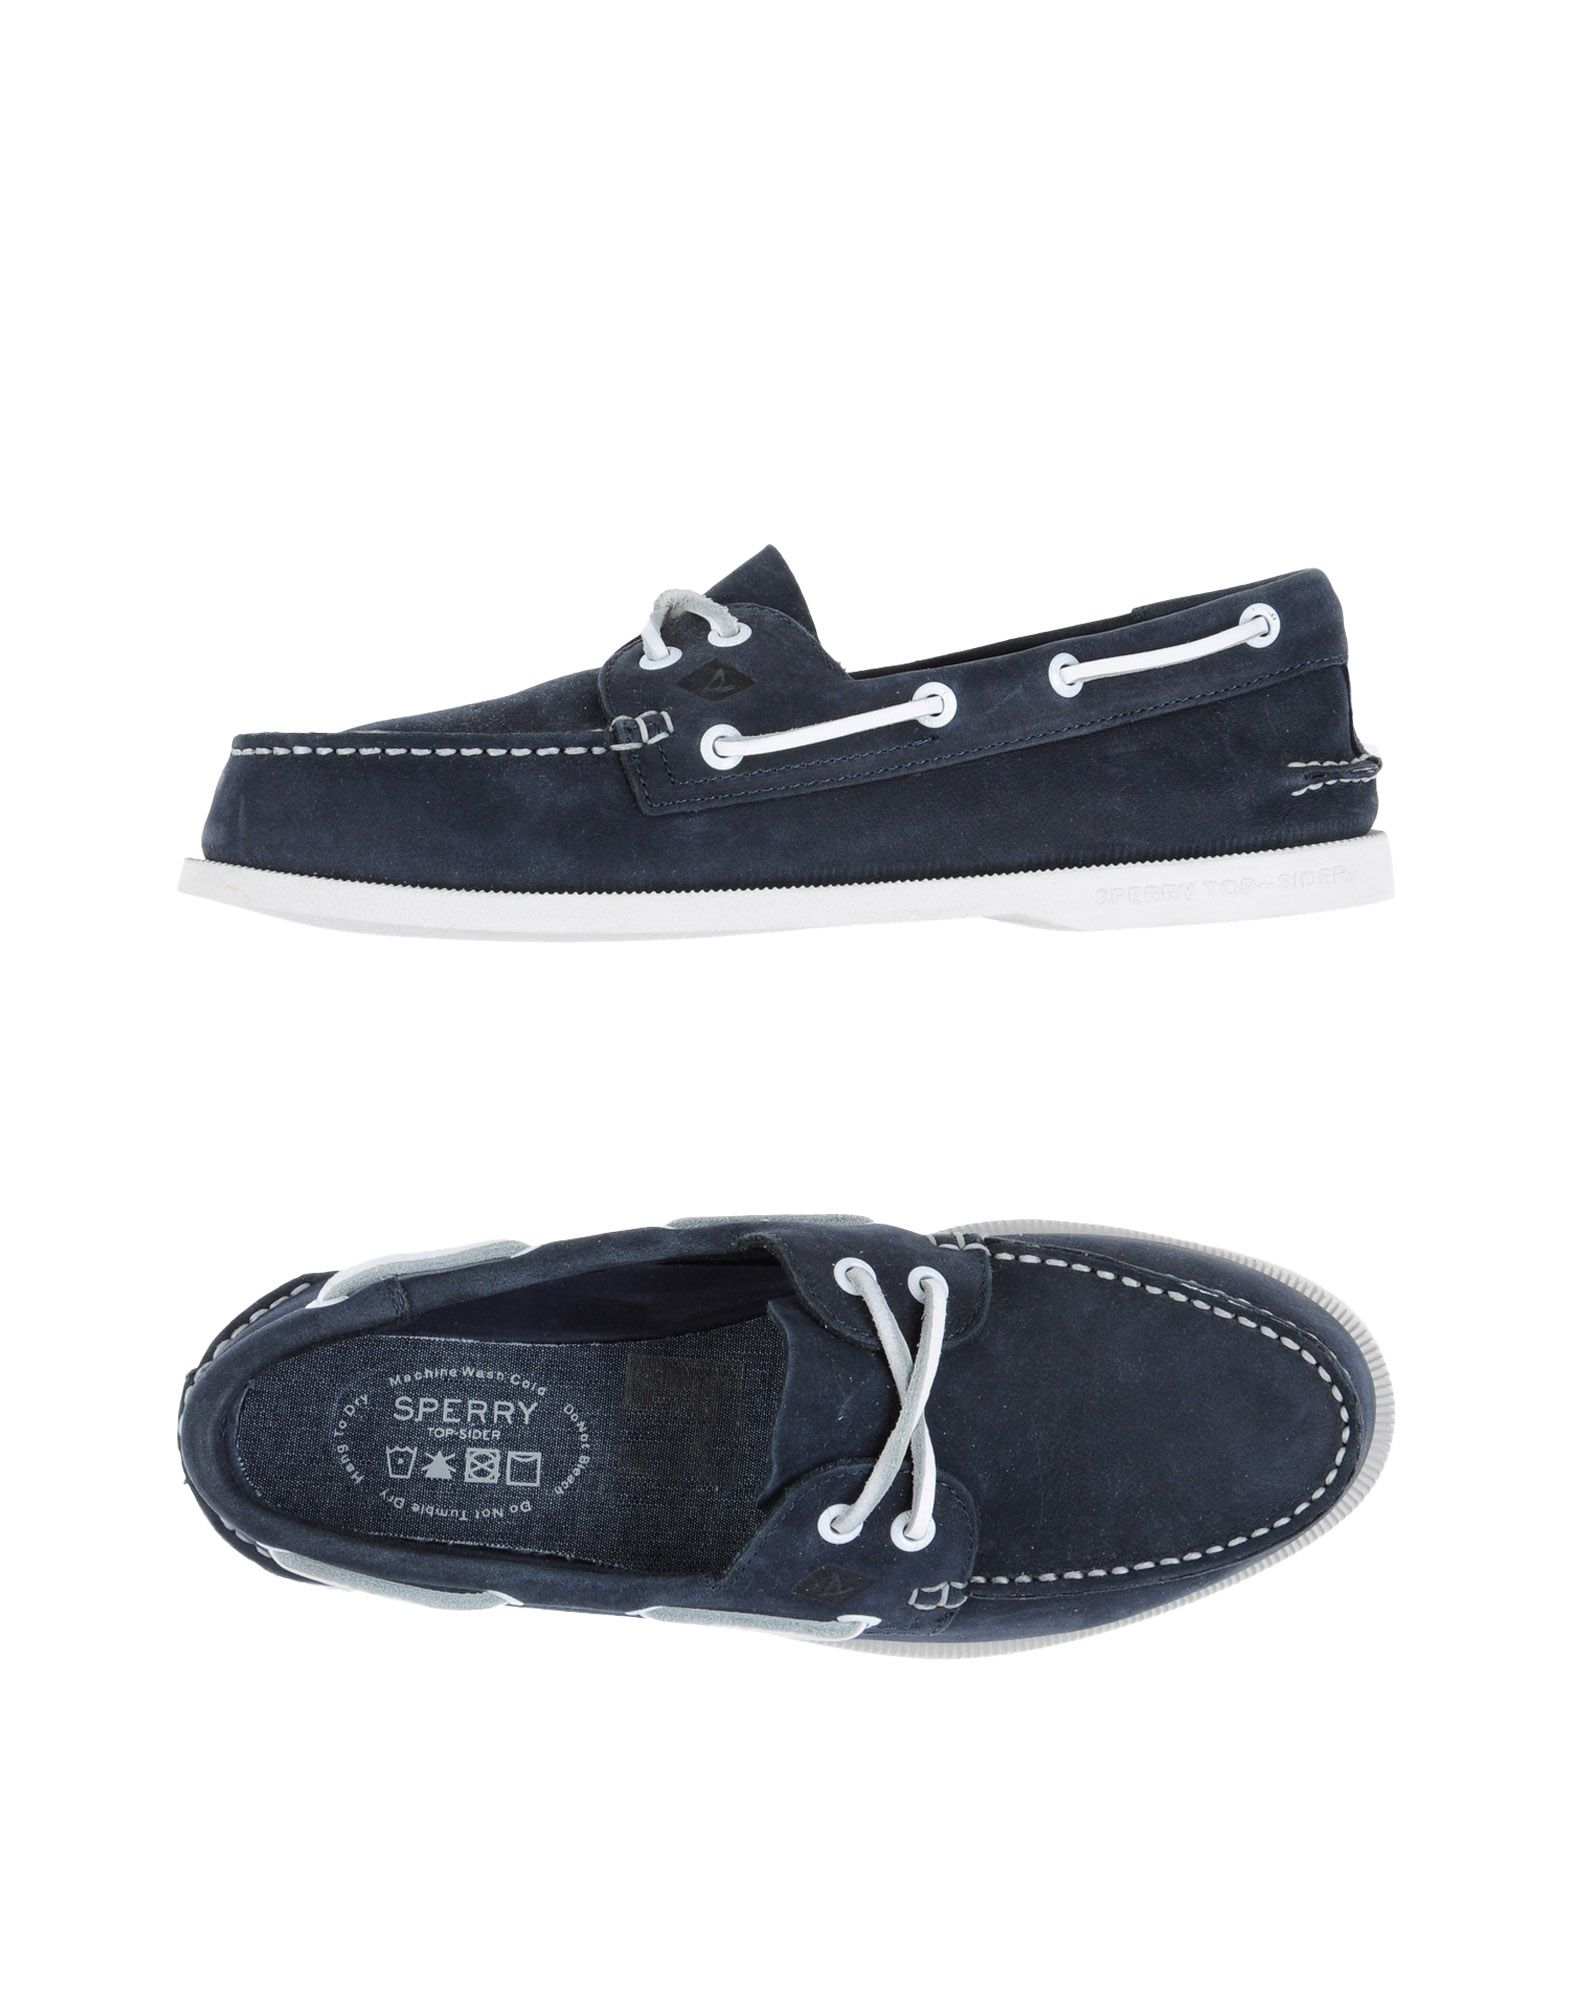 Sperry Top-Sider Loafers Loafers - Men Sperry Top-Sider Loafers Loafers online on  United Kingdom - 11239884HR 9f2424